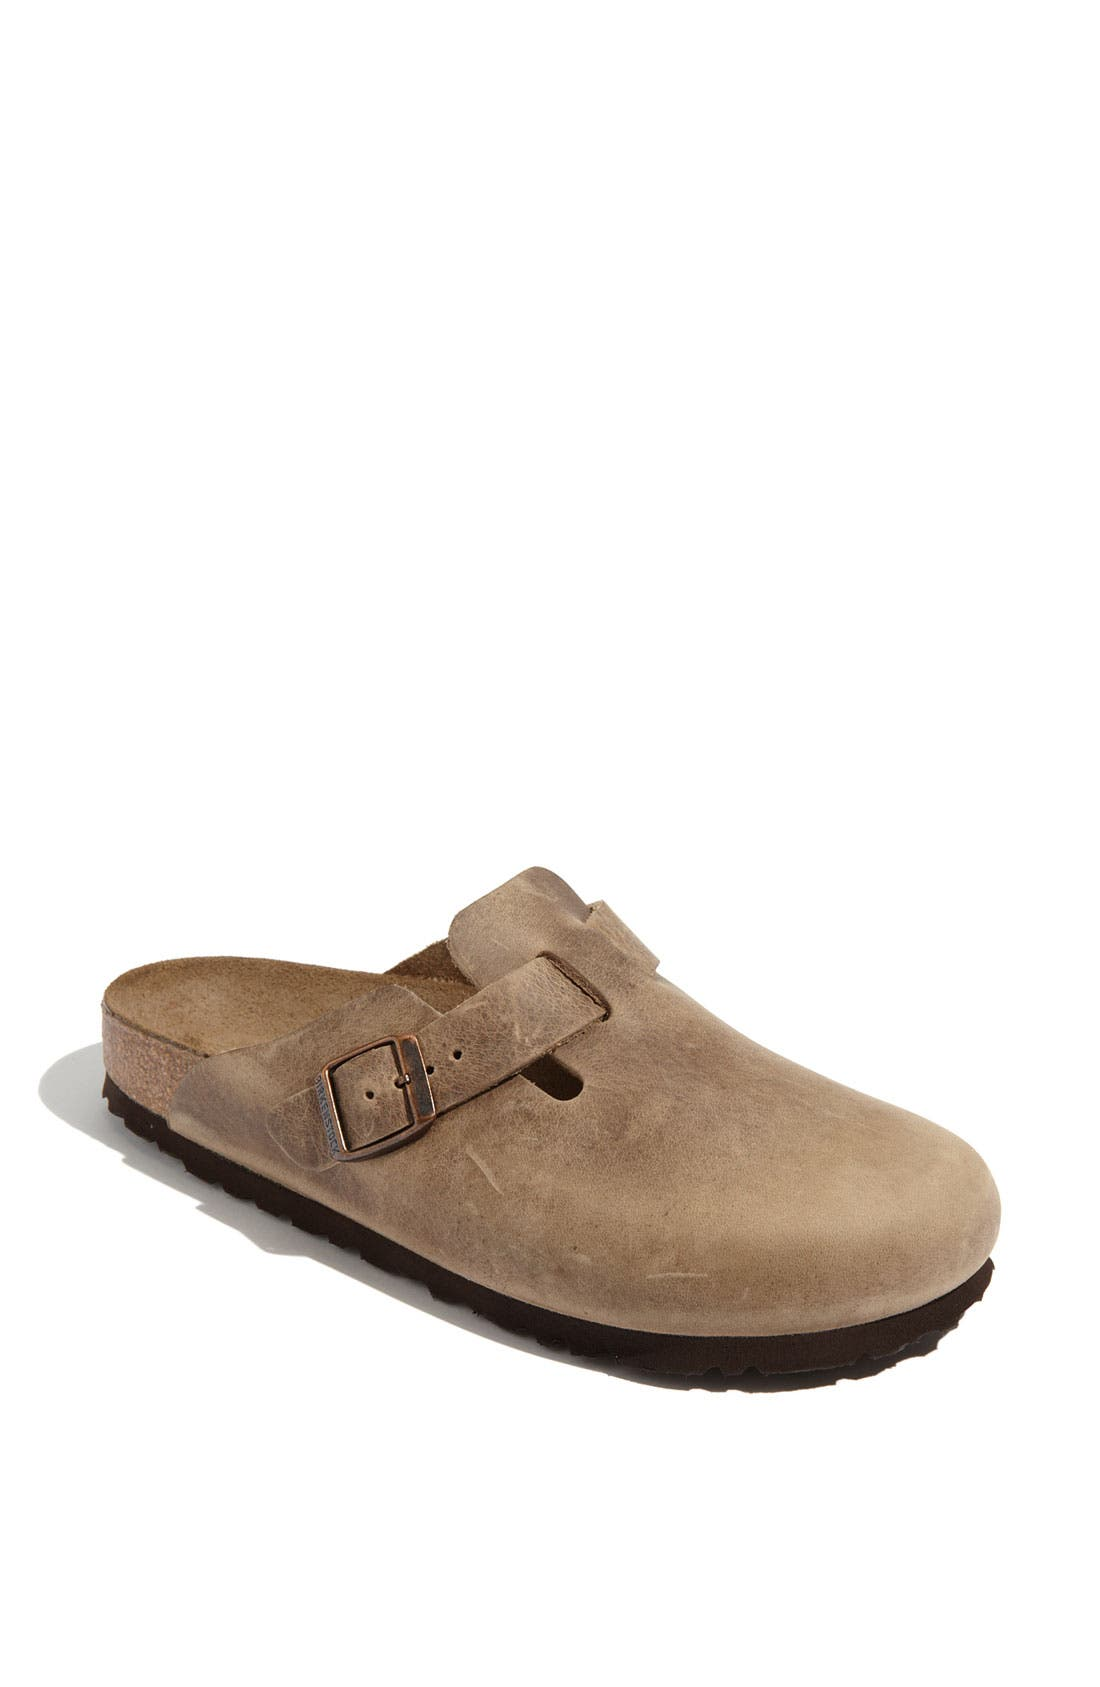 'Boston' Classic Oiled Leather Clog,                             Main thumbnail 1, color,                             Tobacco